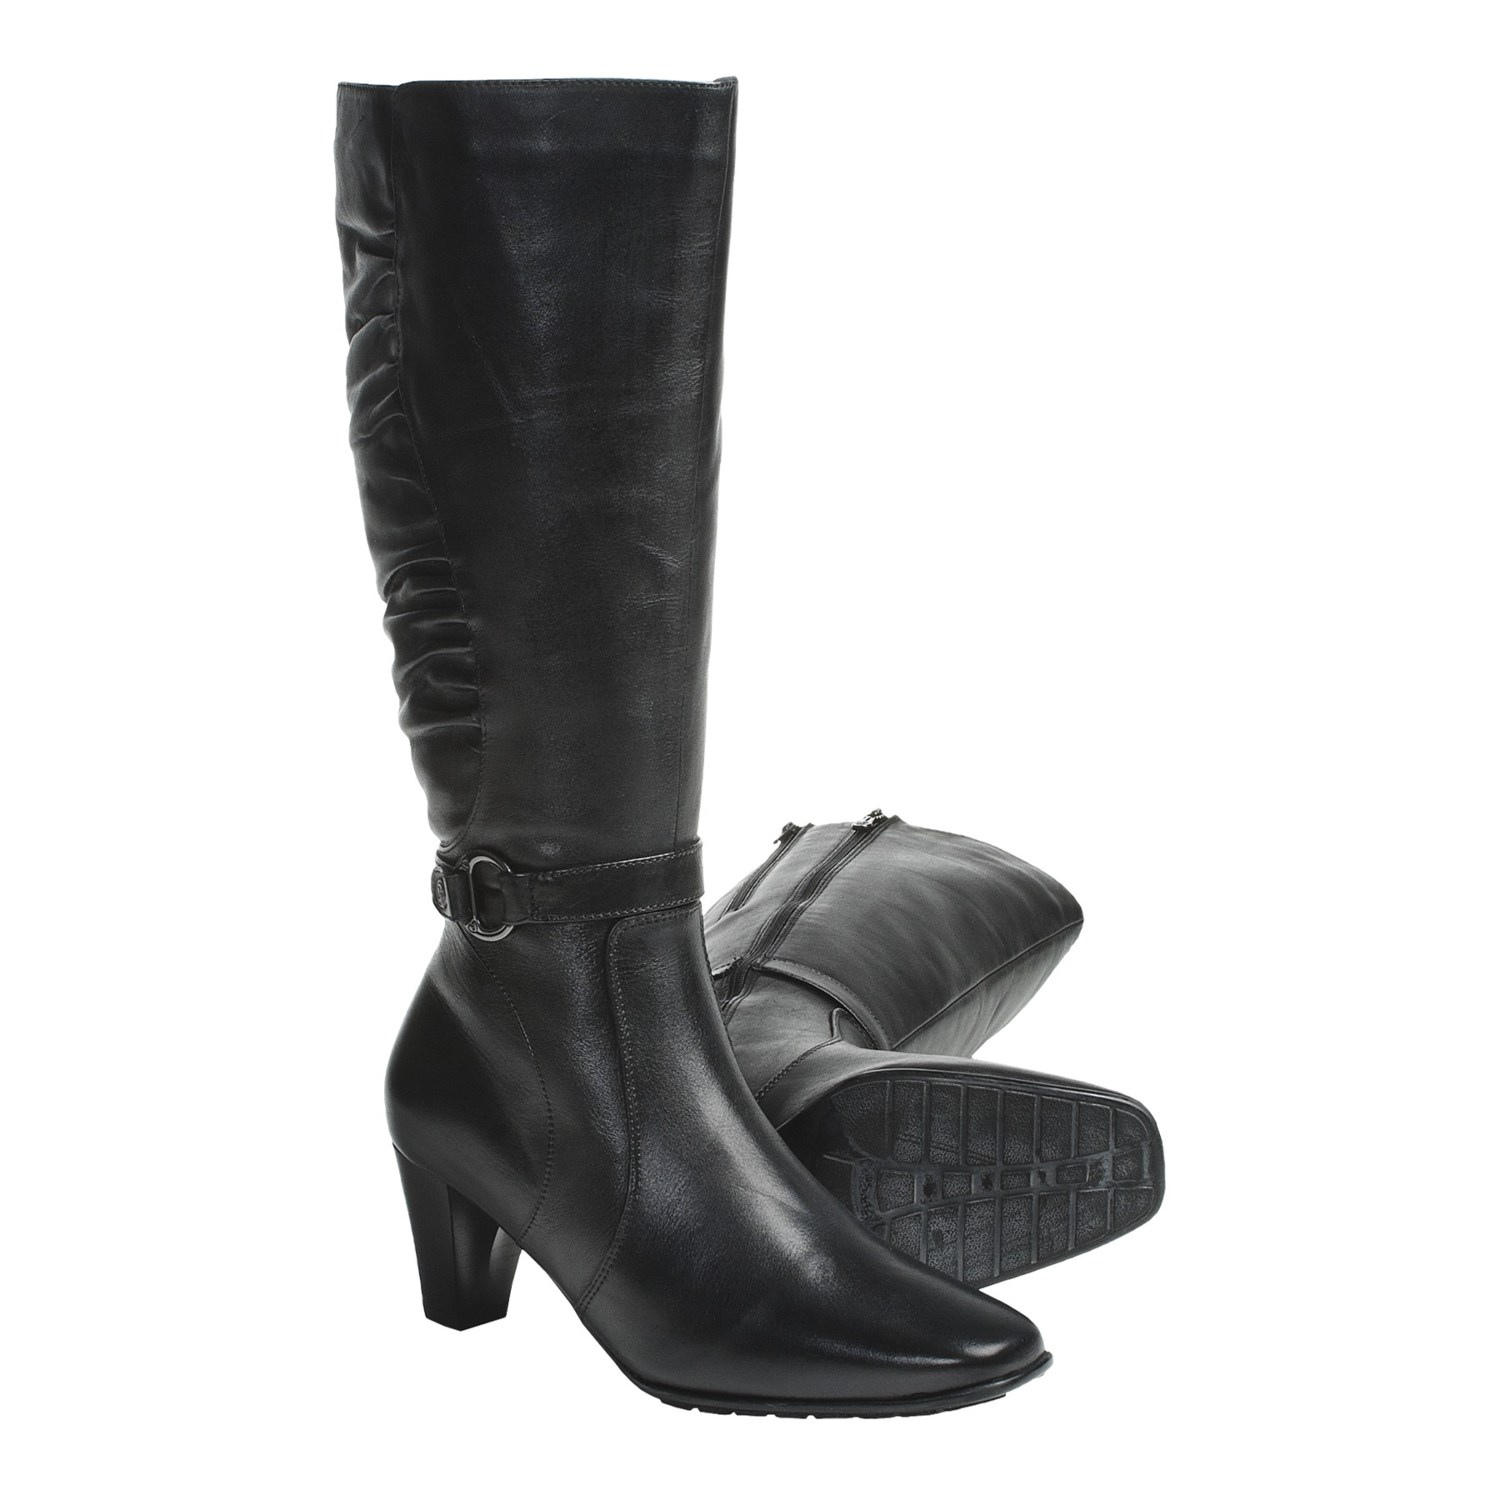 Original Flat Black Leather Boots For Women Women Black Leather Boots Stefania